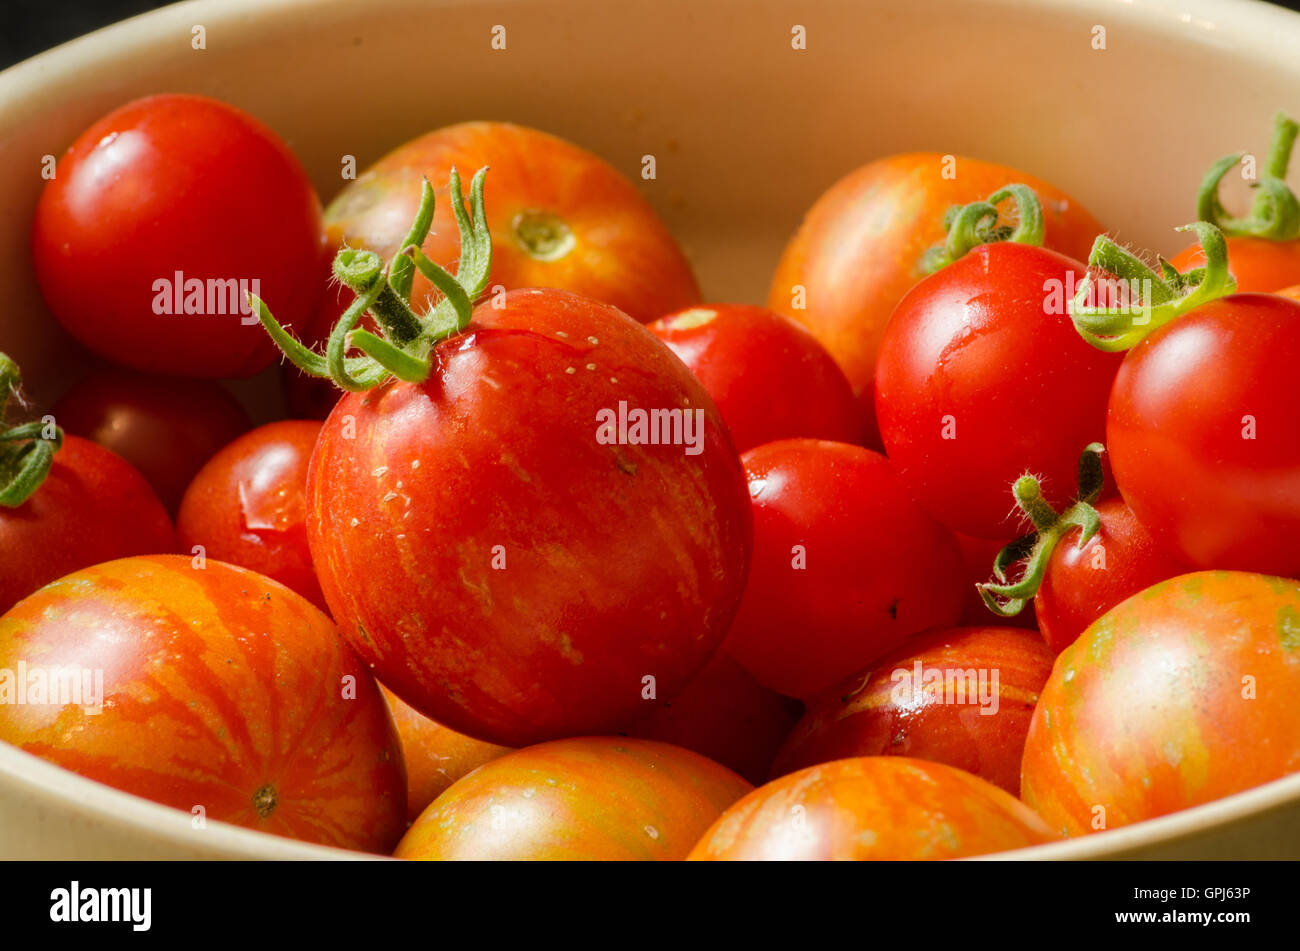 a-close-up-of-home-grown-tomatoes-freshly-picked-from-the-garden-GPJ63P.jpg